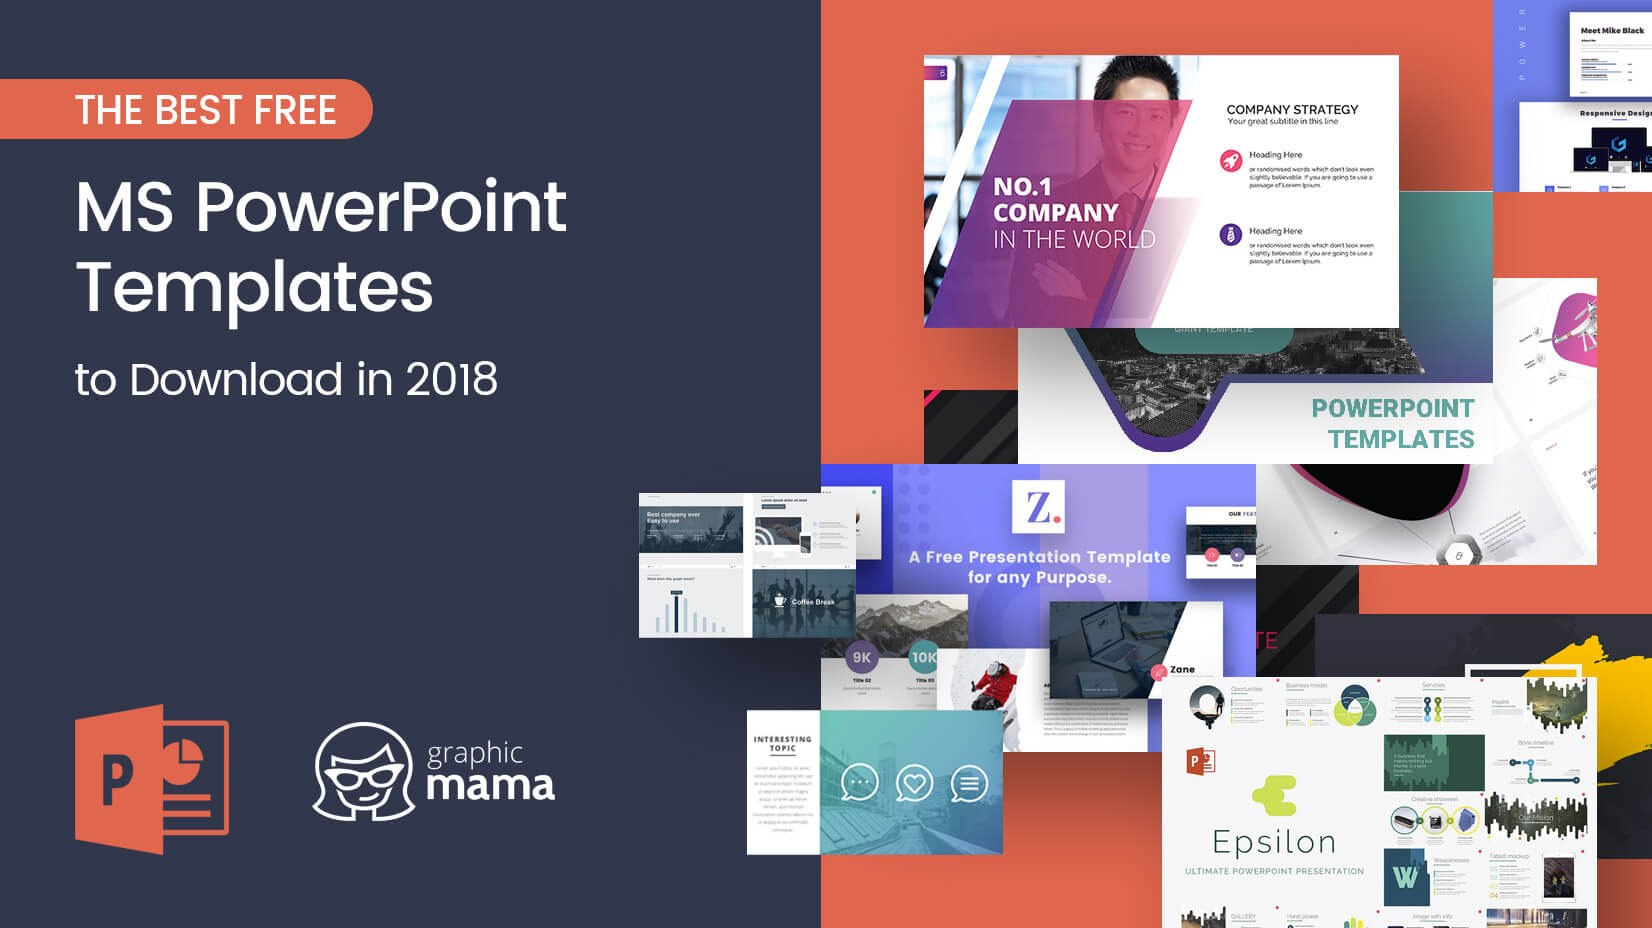 The Best Free Powerpoint Templates To Download In   Graphicmama With Regard To Free Powerpoint Presentation Templates Downloads